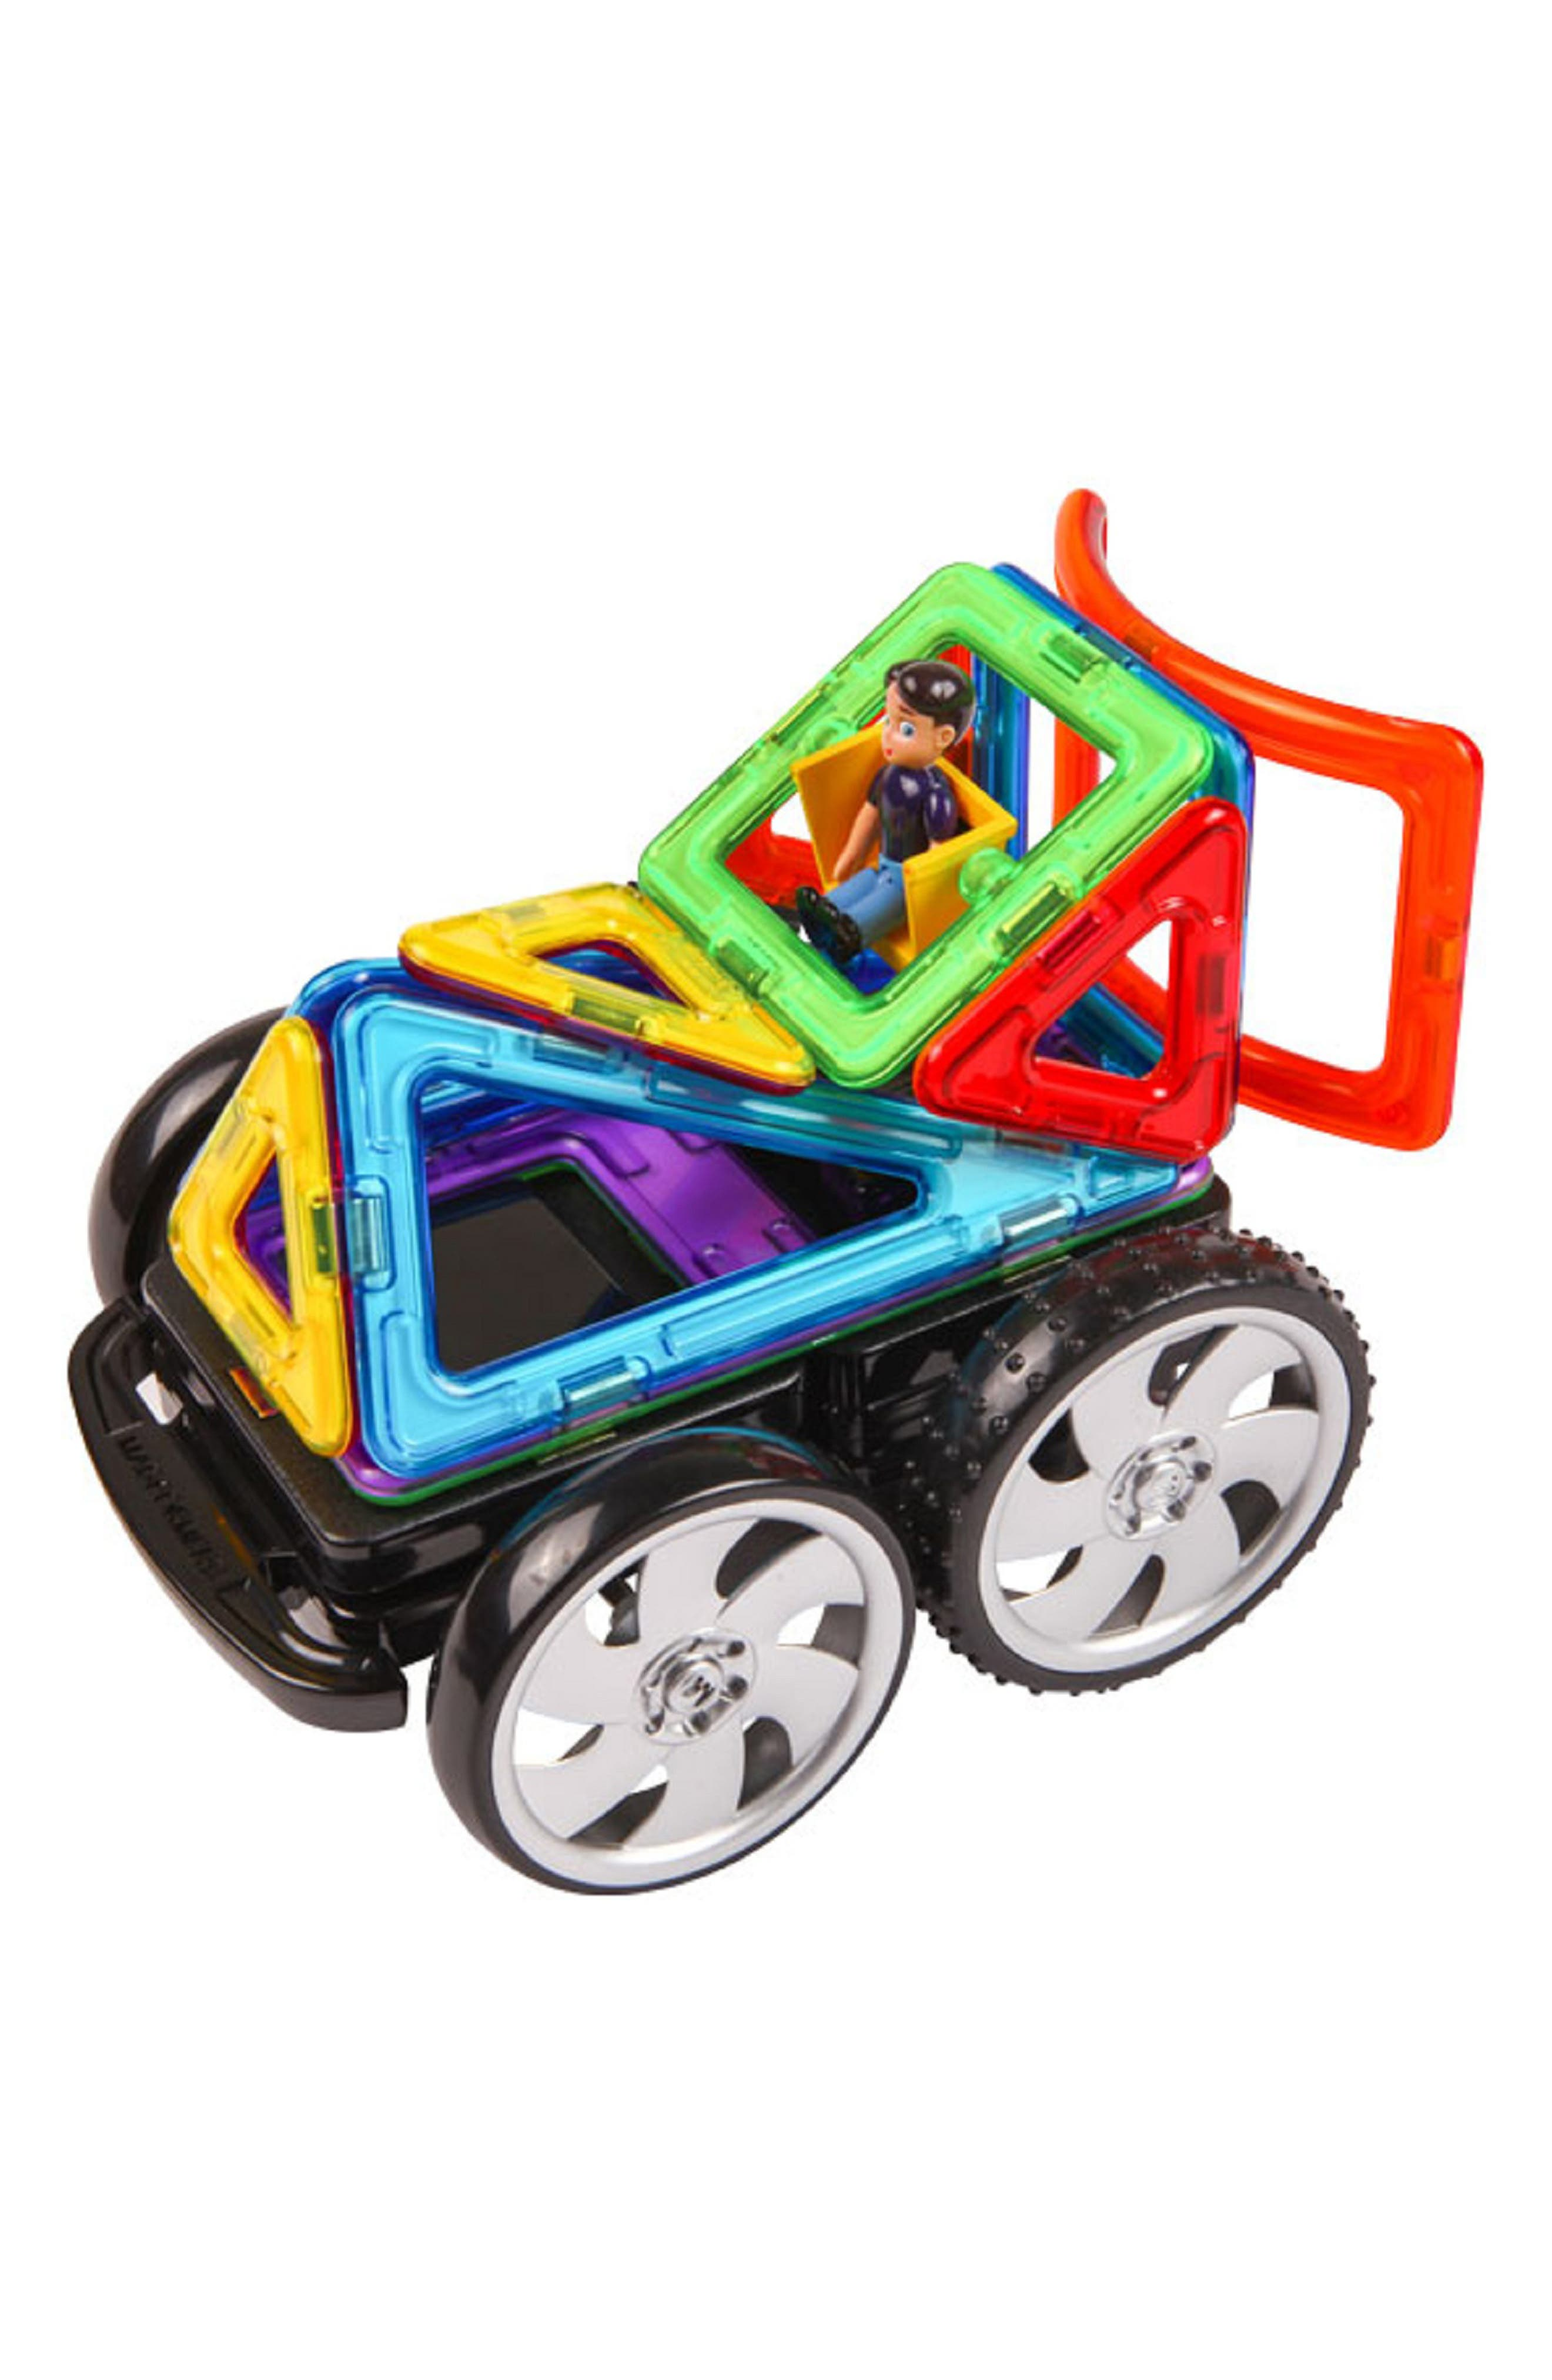 'Racing' Magnetic Remote Control Vehicle Construction Set,                             Alternate thumbnail 2, color,                             Rainbow